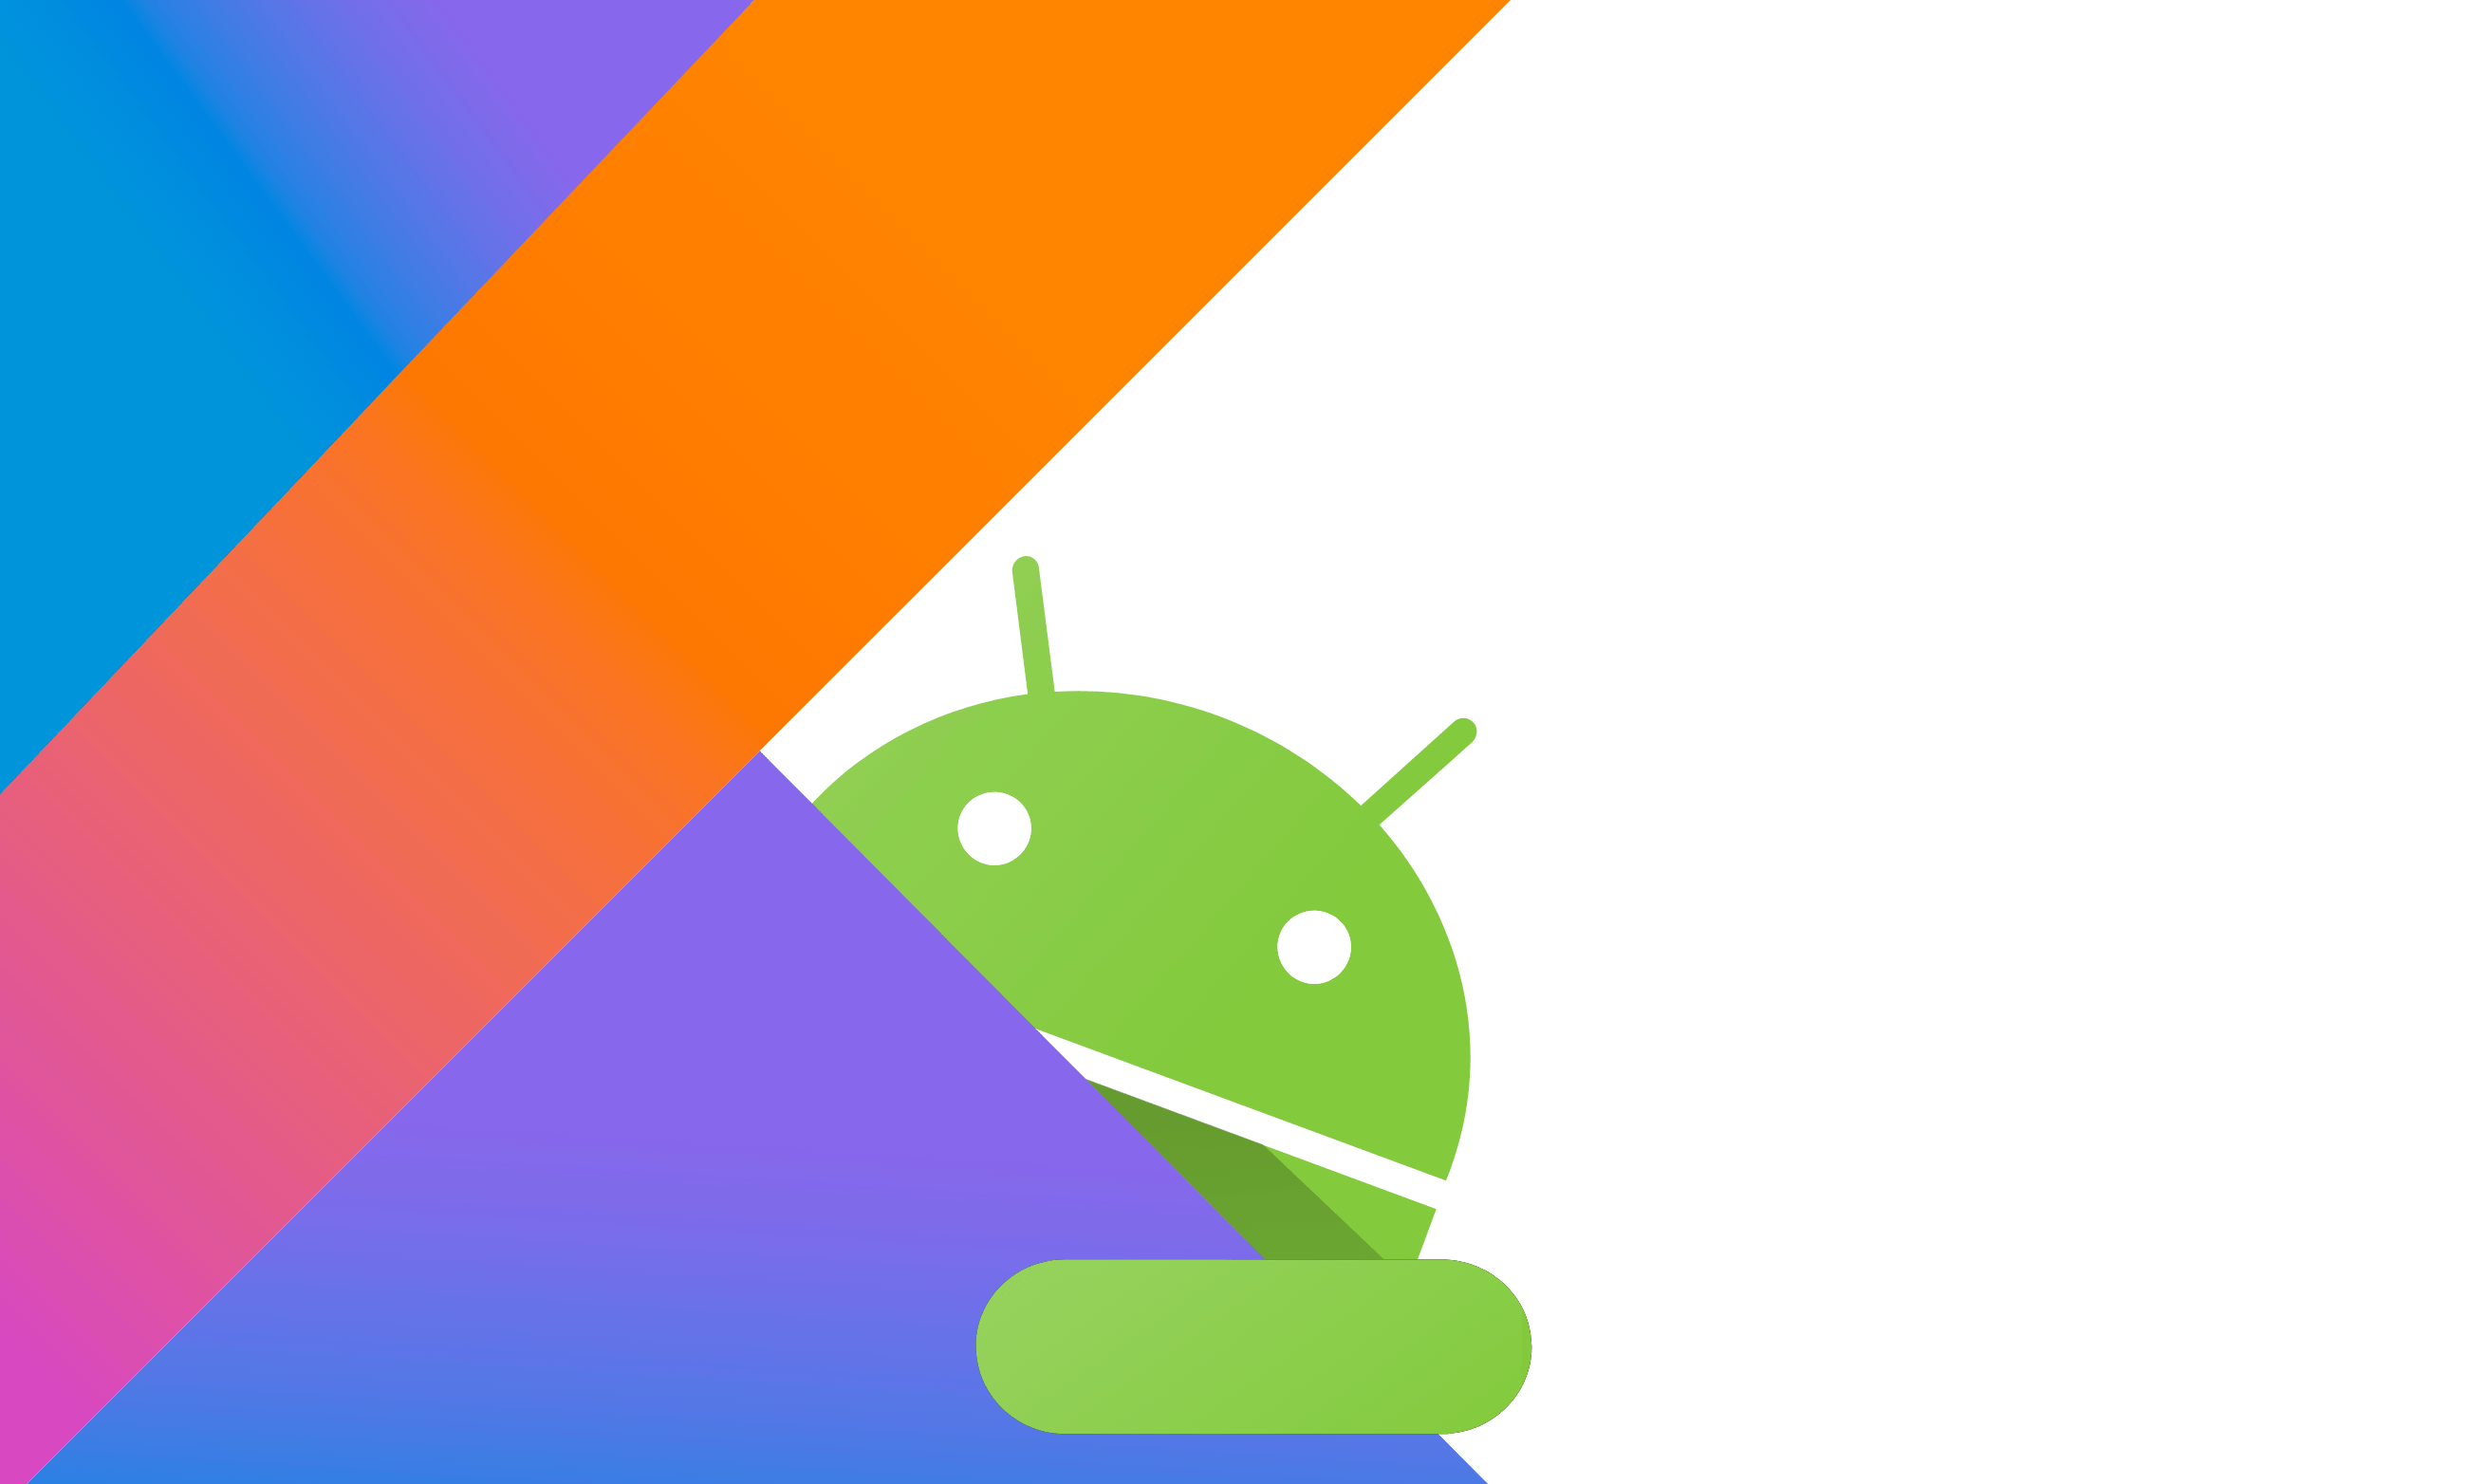 Porting Phimpme Android to Kotlin